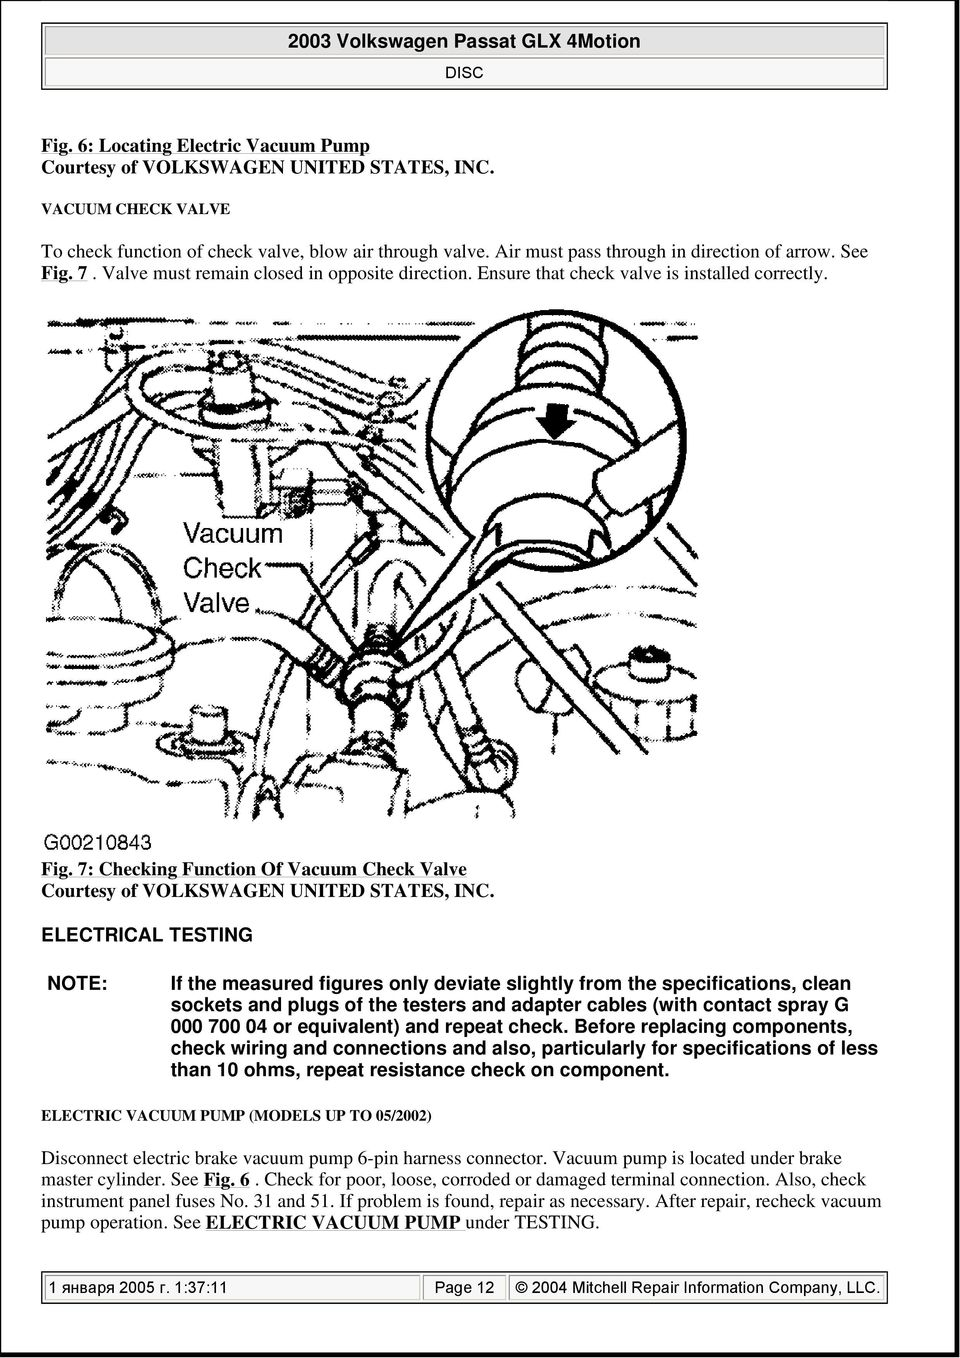 2003 Volkswagen Passat Glx 4motion Pdf Schematic Diagram Was Created For Installing The Vacuum Pump 7 Checking Function Of Check Valve Electrical Testing Note If Measured Figures